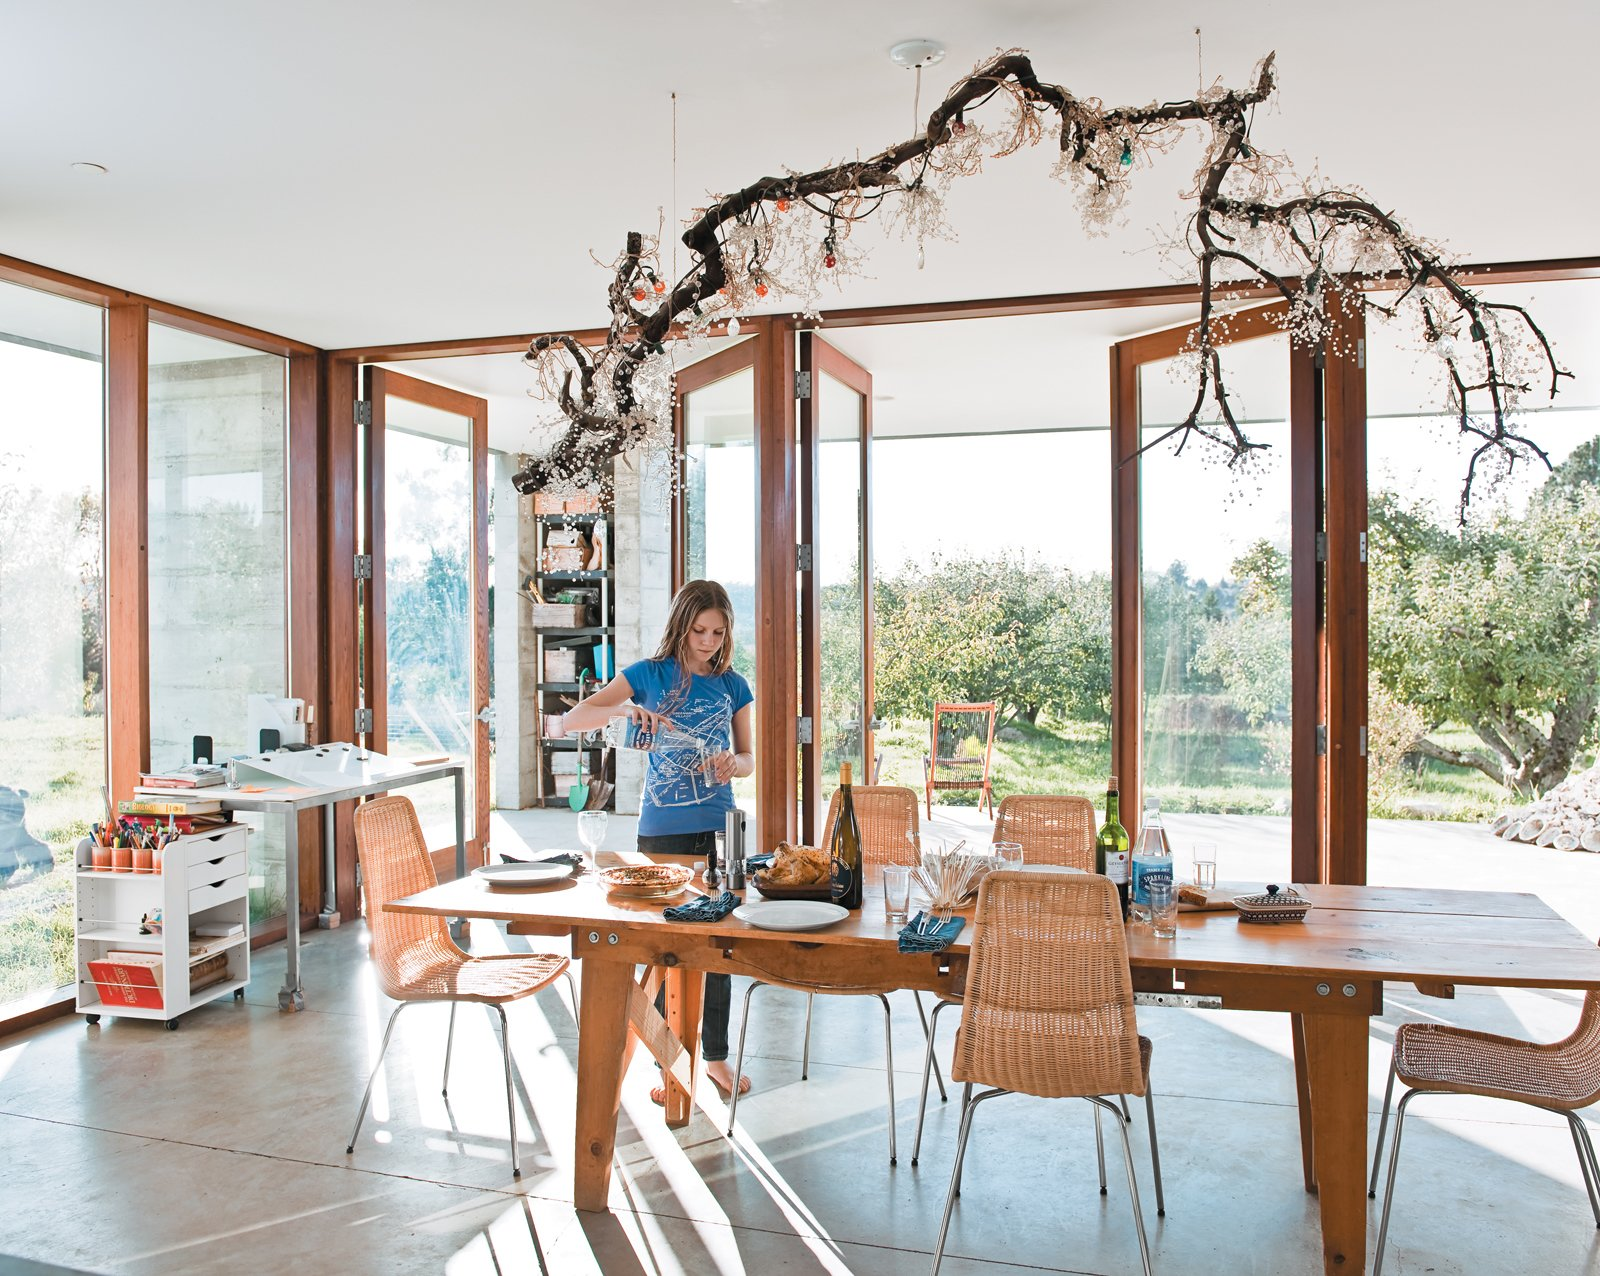 The dining room table sits at one end of the main room, with an open view onto the rows of trees that extend out from two sides of the house. Natasha sets the table underneath a suspended fixture made by her mother, Naomi, out of a salvaged branch, crystal pieces, and strung bulbs. A Sonoma Prefab That Celebrates a Family's Passion for Cooking - Photo 4 of 18